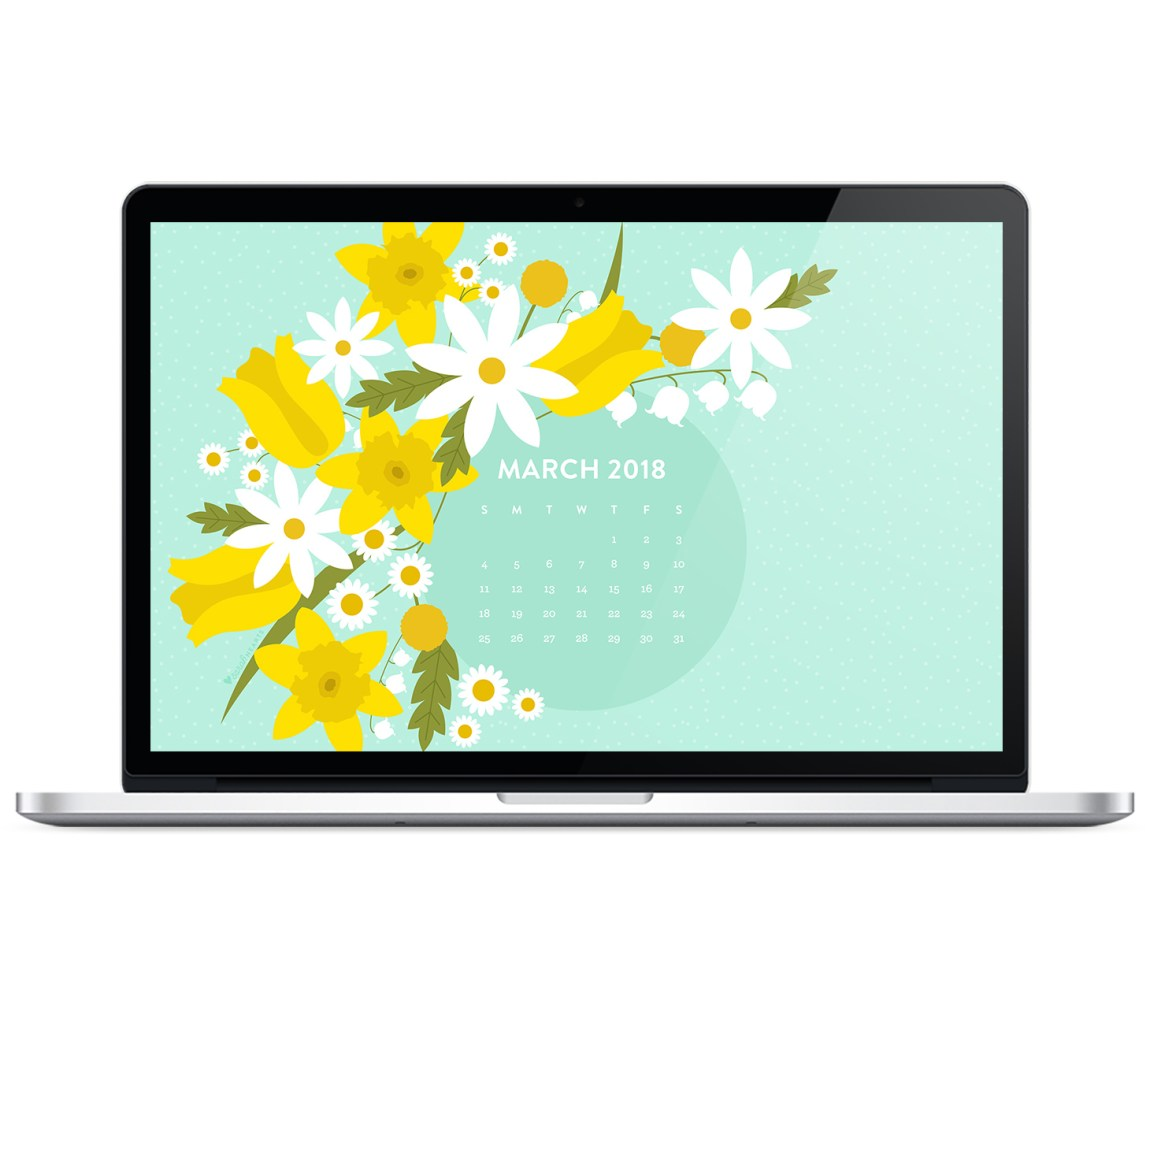 Spring floral wallpaper with April 2018 calendar